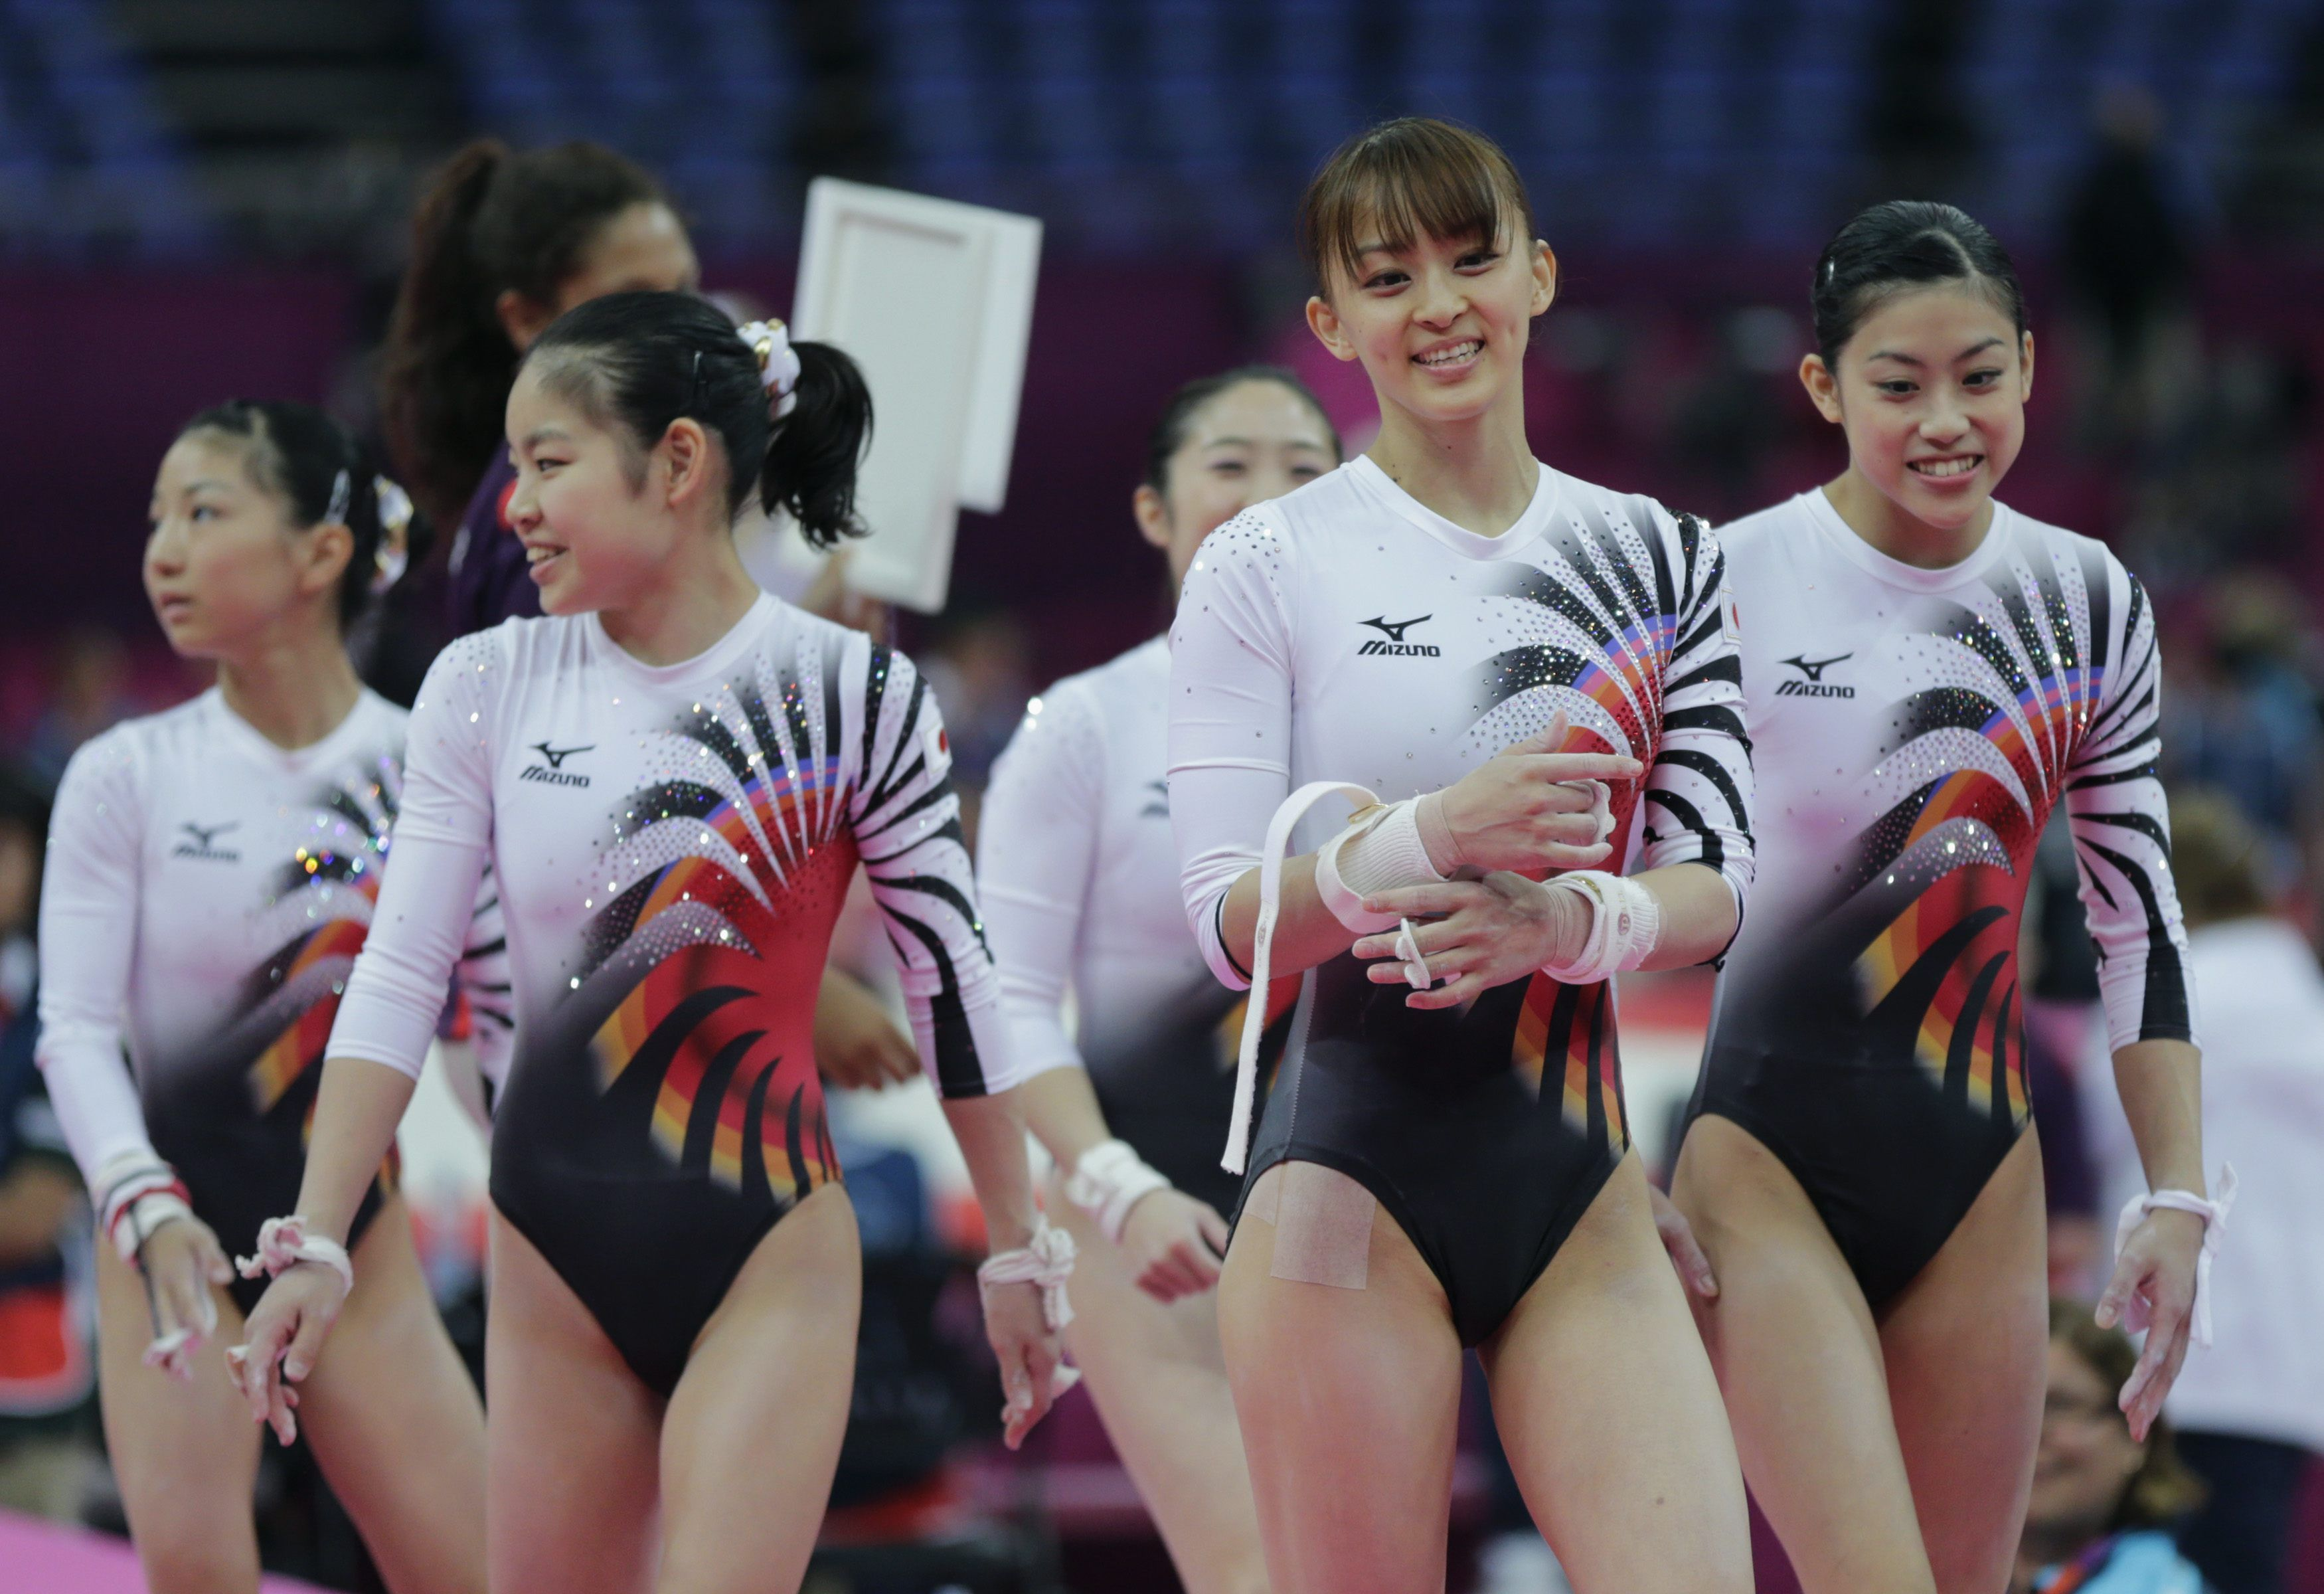 dd16b8476325 149: New Rules for Tokyo Olympics in 2020 from GymCastic: The Gymnastics  Podcast on RadioPublic